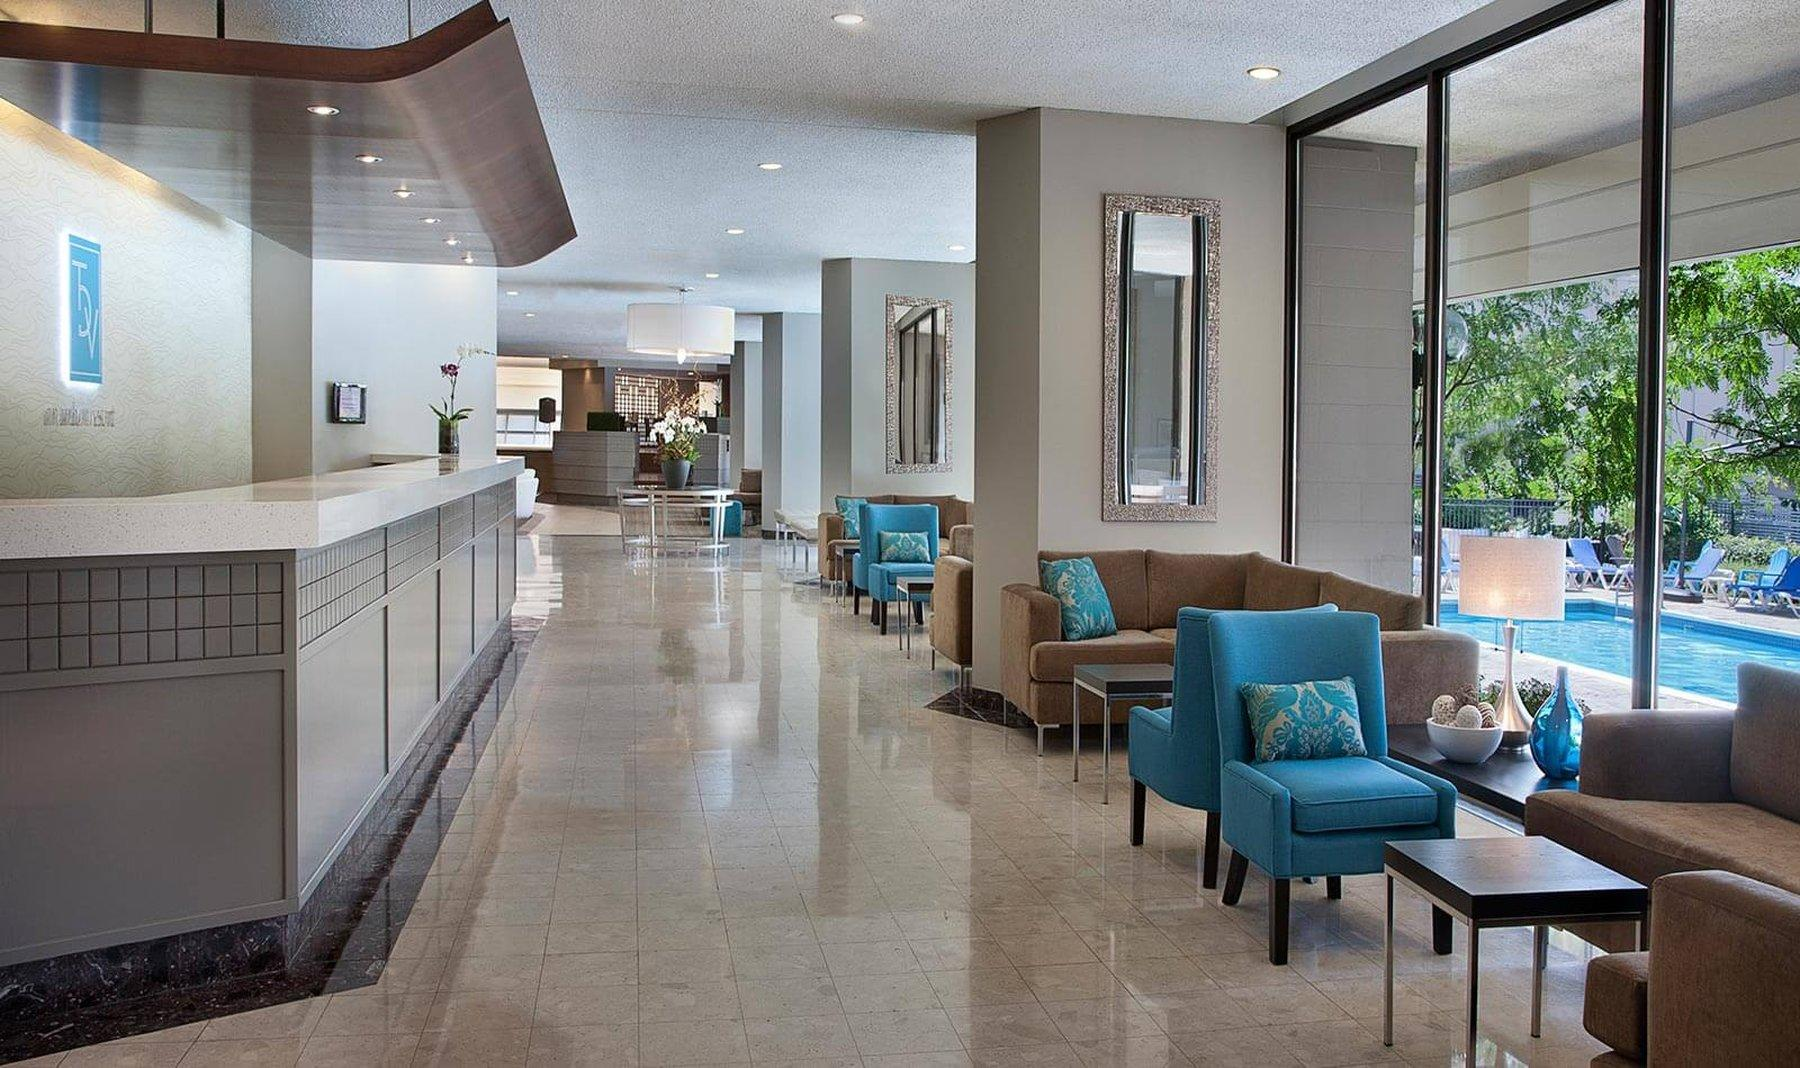 Lobby area with comfy couches and chairs